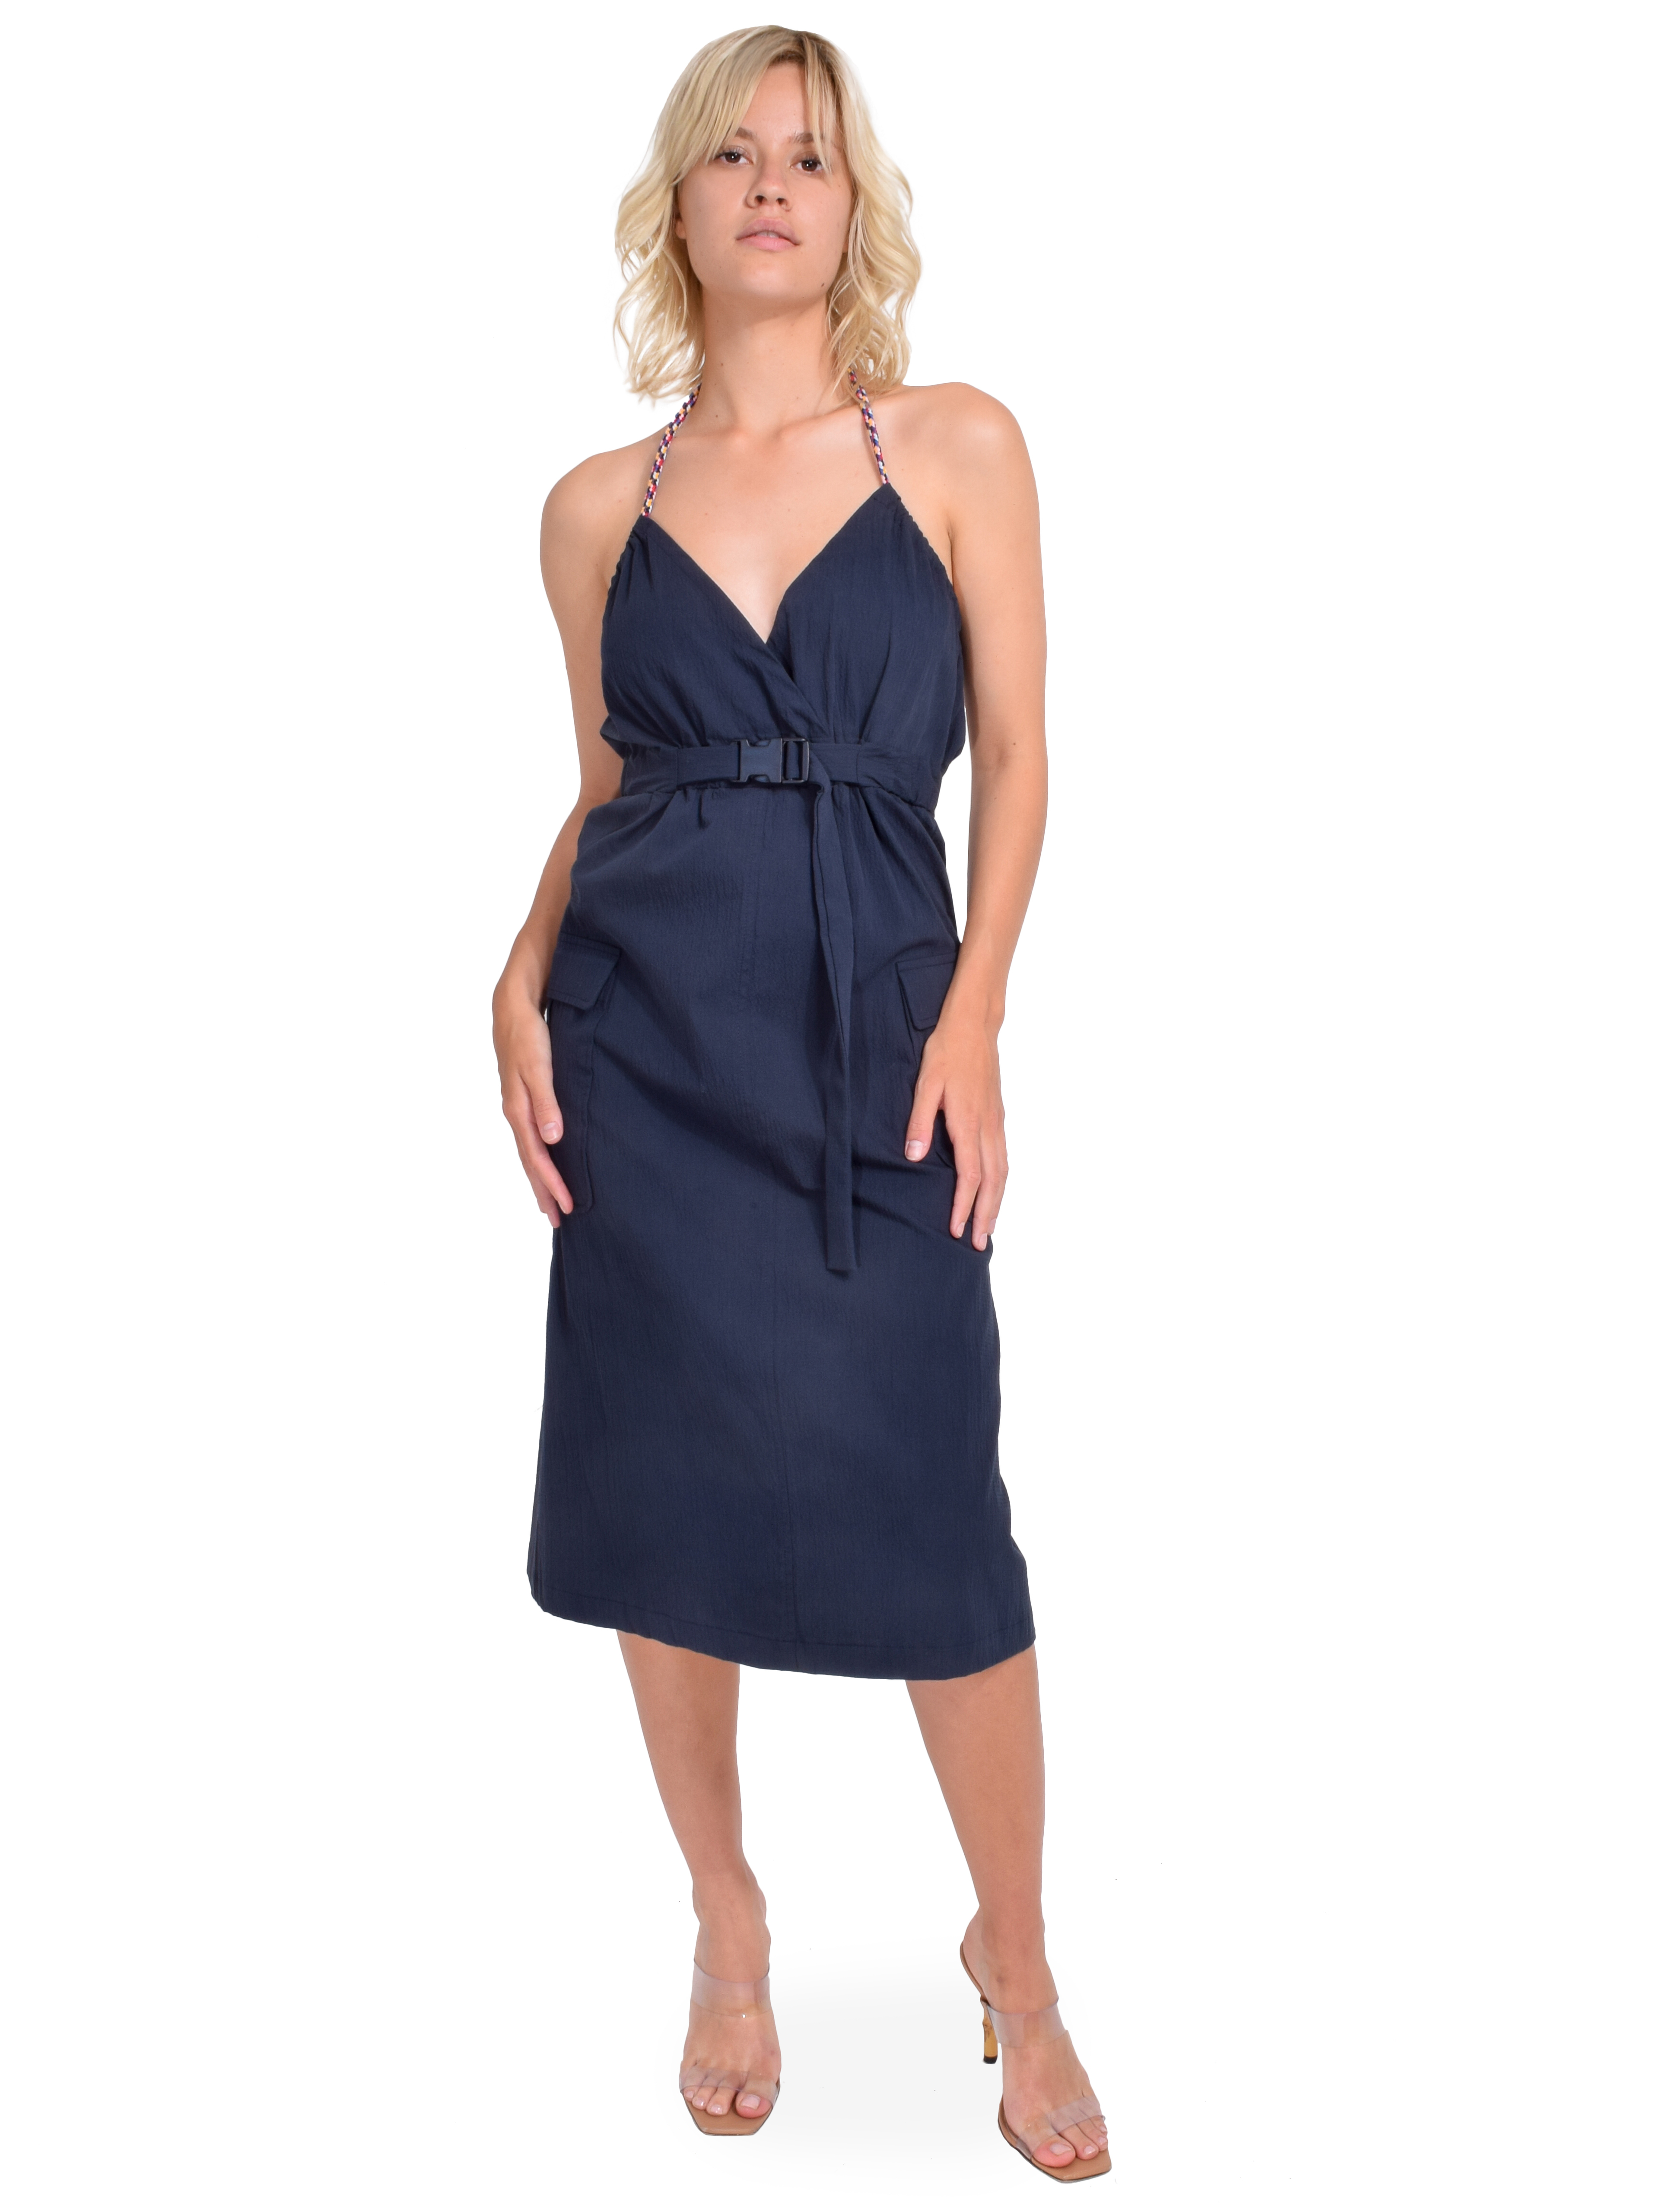 Ottod'Ame Cotton Midi Dress with Belt Front View  X1https://cdn11.bigcommerce.com/s-3wu6n/products/33258/images/109753/55_copy__29664.1593649861.244.365.jpg?c=2X2